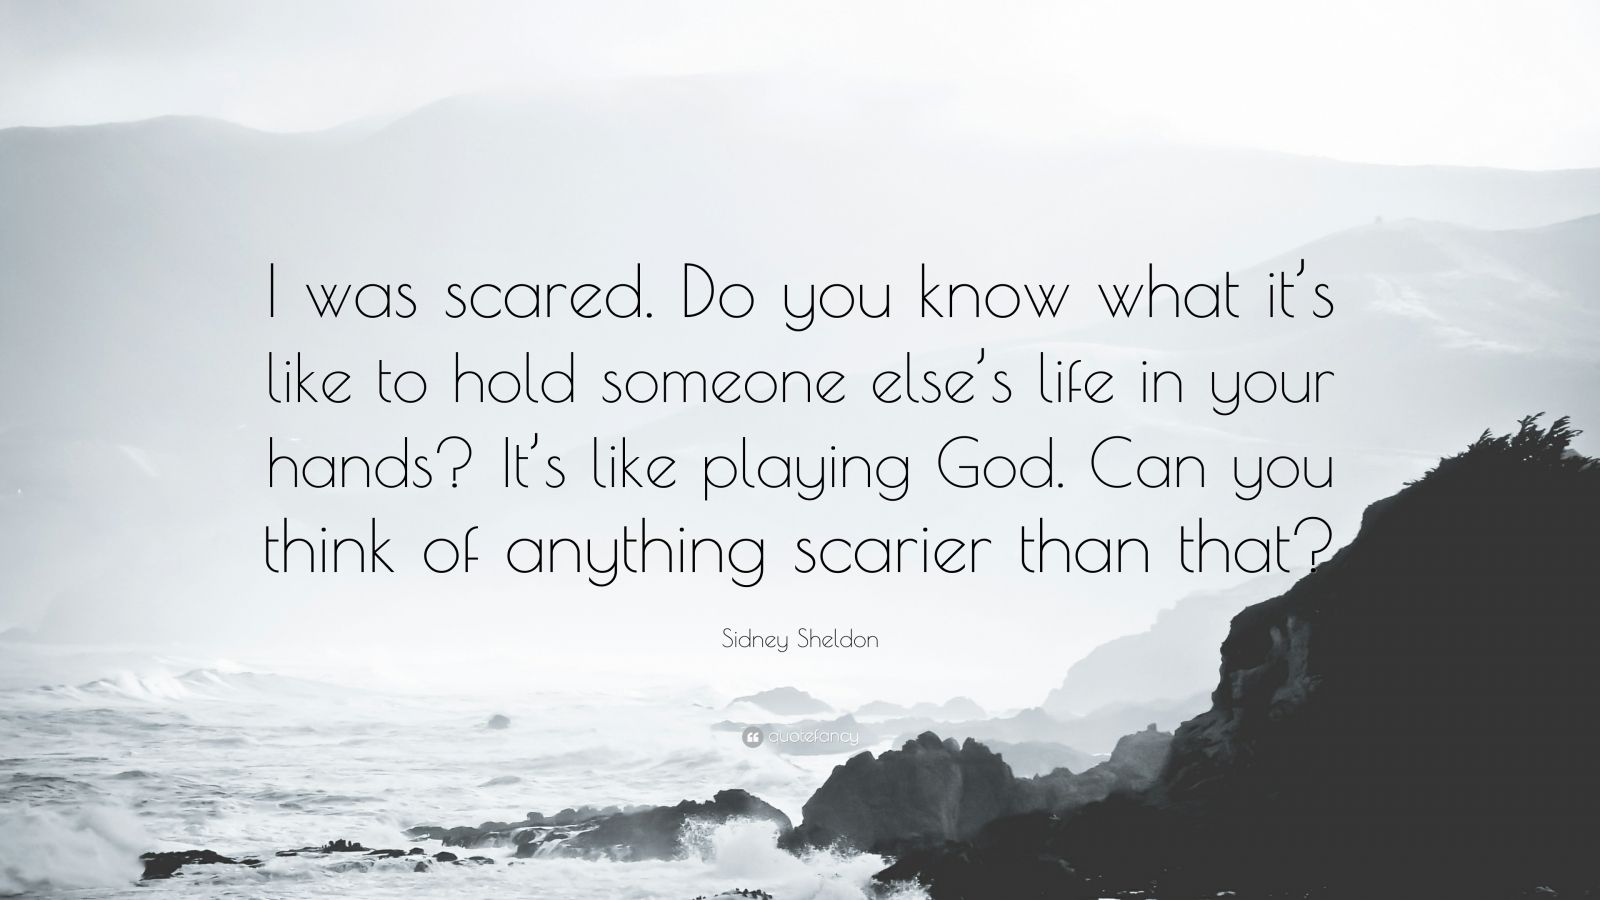 """Sidney Sheldon Quote: """"I was scared. Do you know what it's like to hold someone else's life in your hands? It's like playing God. Can you think of anything scarier than that?"""""""